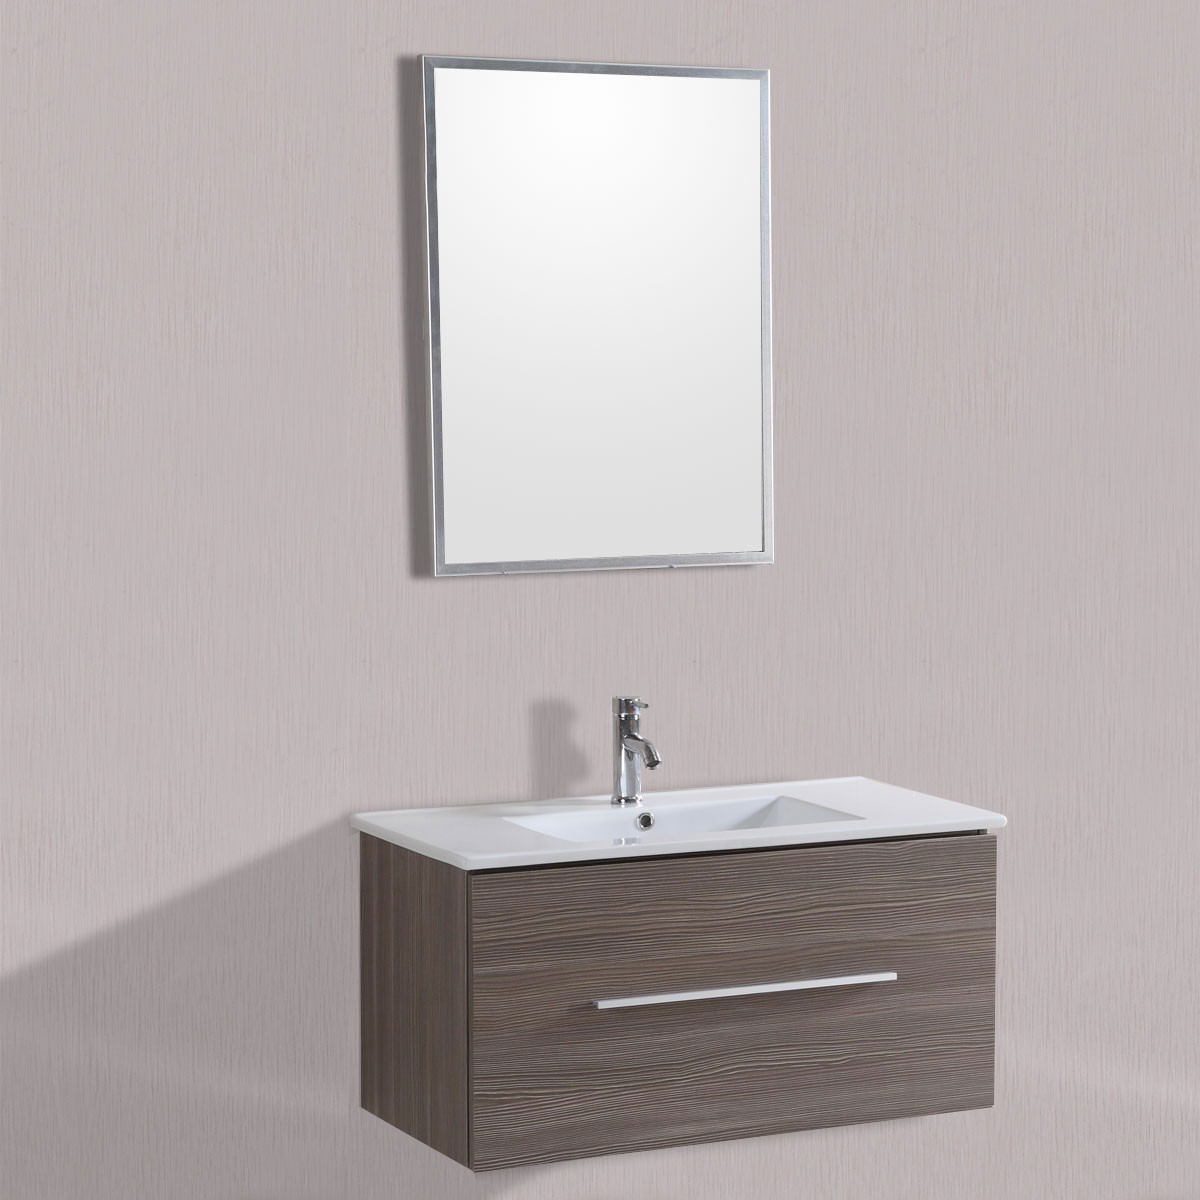 40 In. Wall Mount Bathroom Vanity Set with Single Sink and Mirror (DK-T5010C-SET)